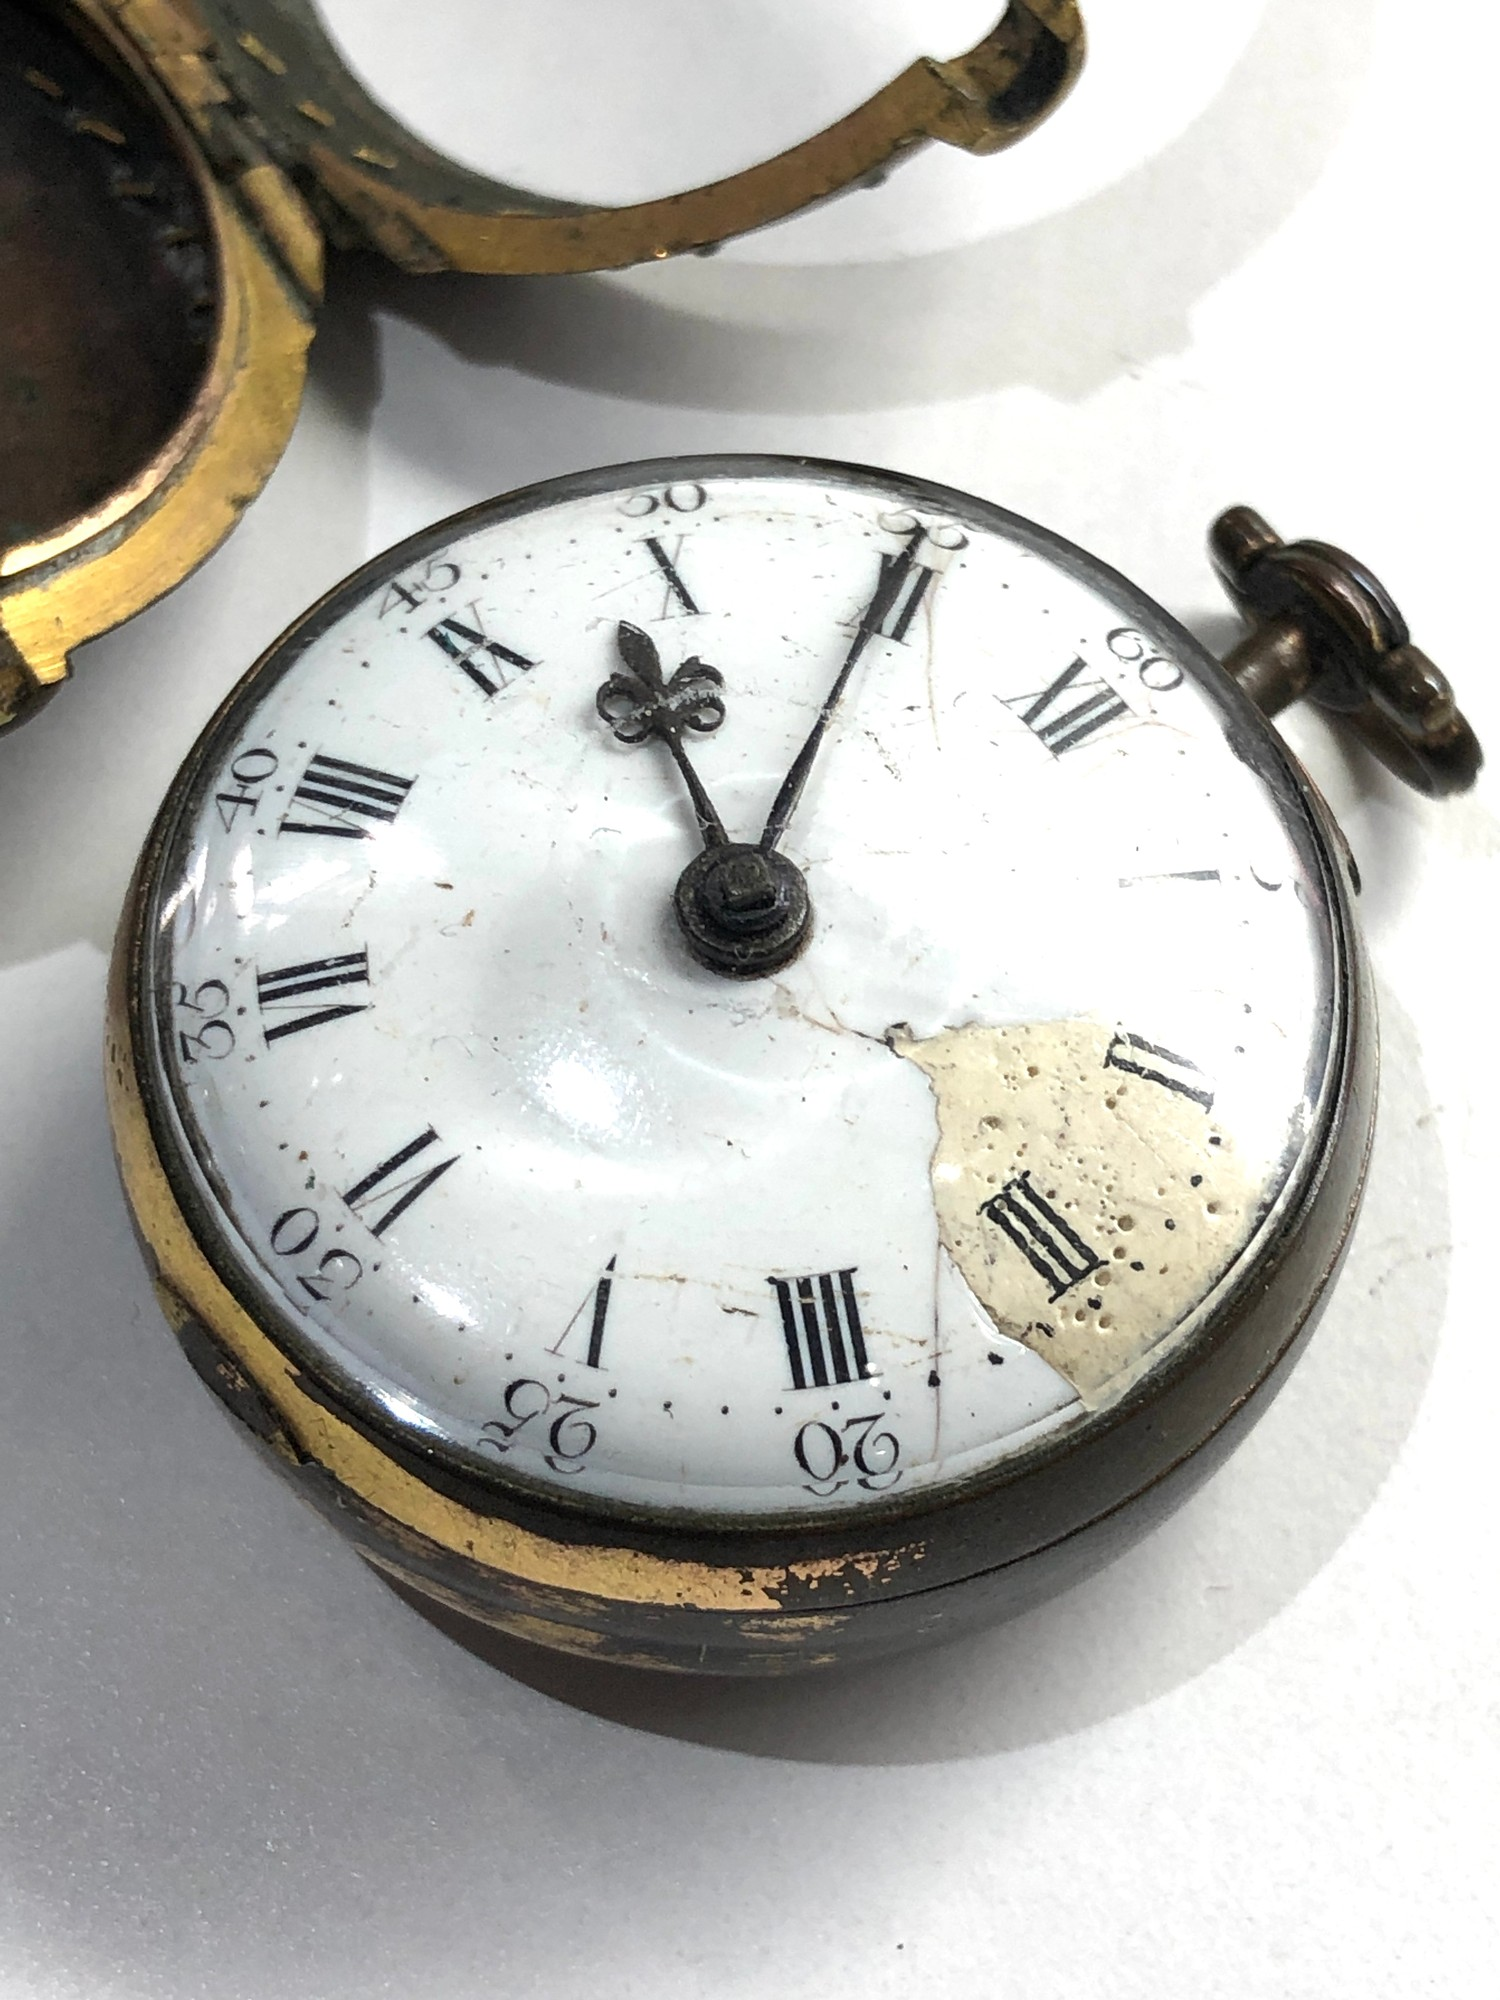 18th century London paircase verge pocket watch the watch does wind and tick dial damaged outer case - Image 7 of 9